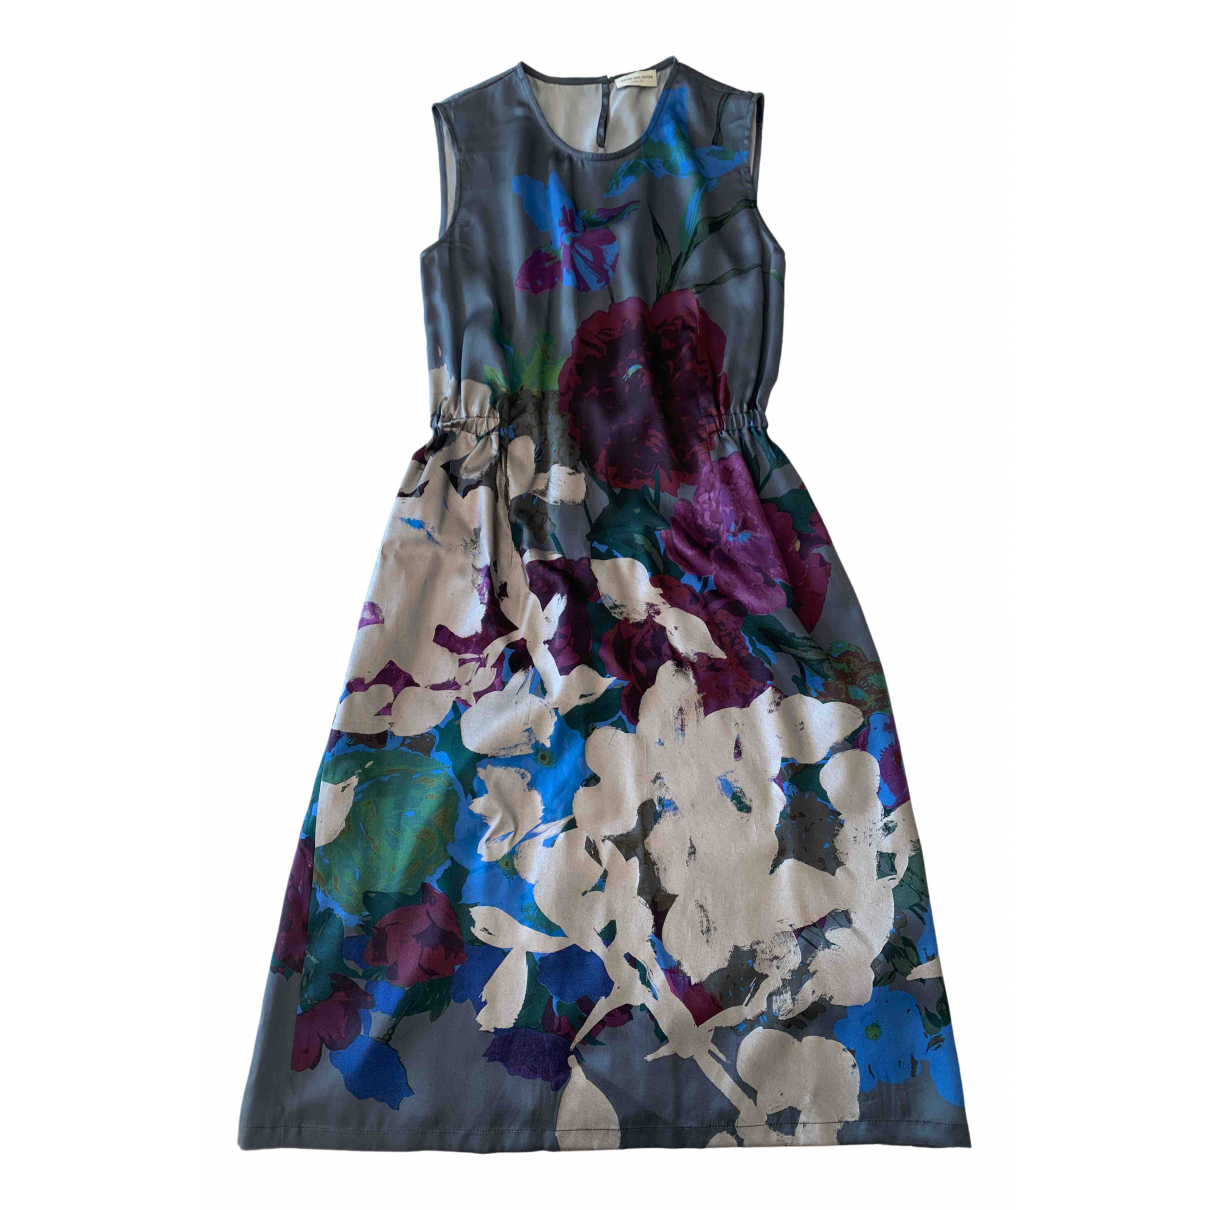 Dries Van Noten N Multicolour Silk dress for Women 36 IT